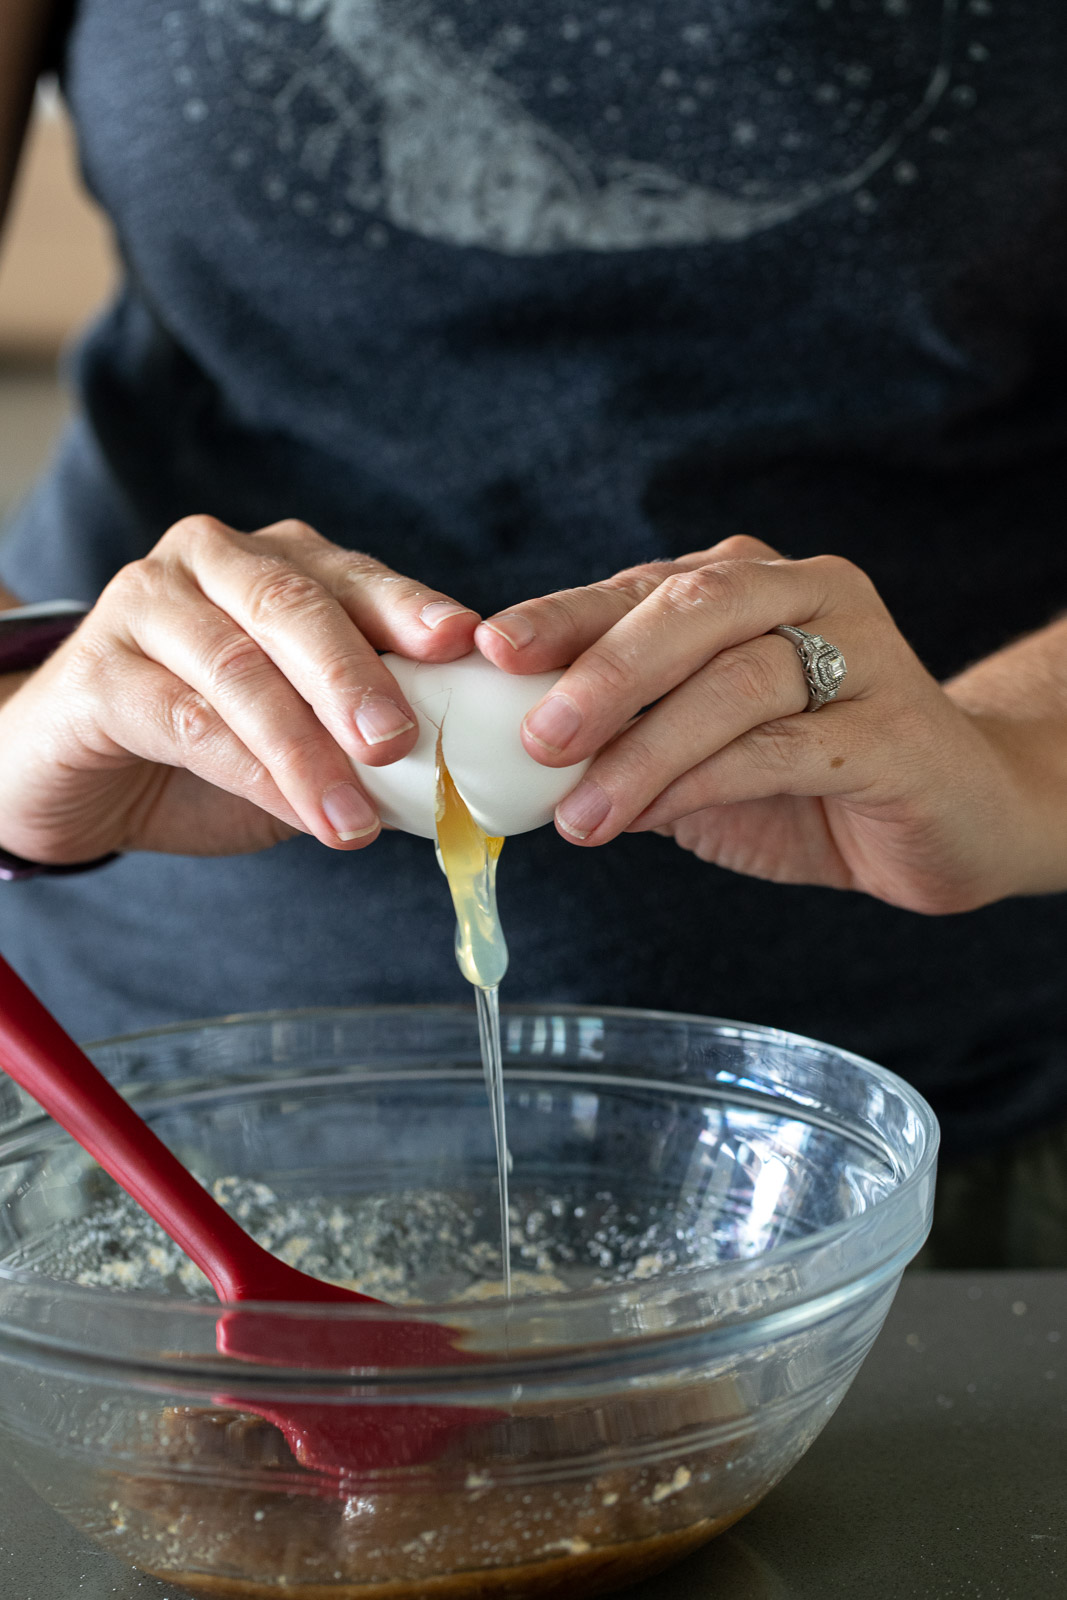 woman cracking an egg into a glass bowl.